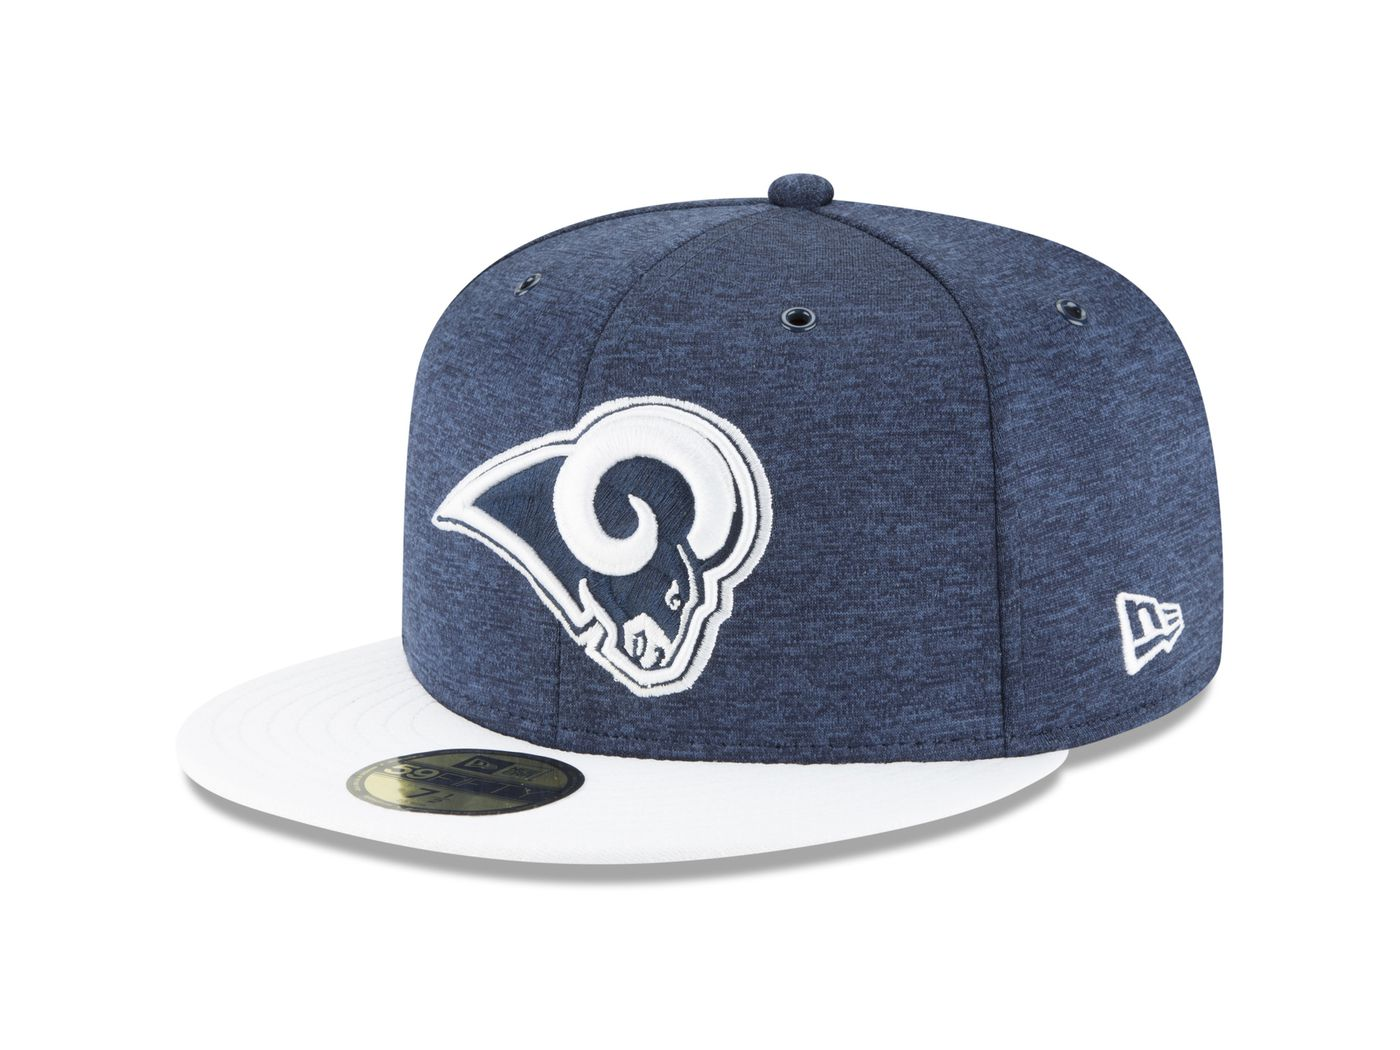 f3bfe5b13b226 New Era launches 2018 NFL Sideline Collection - SBNation.com